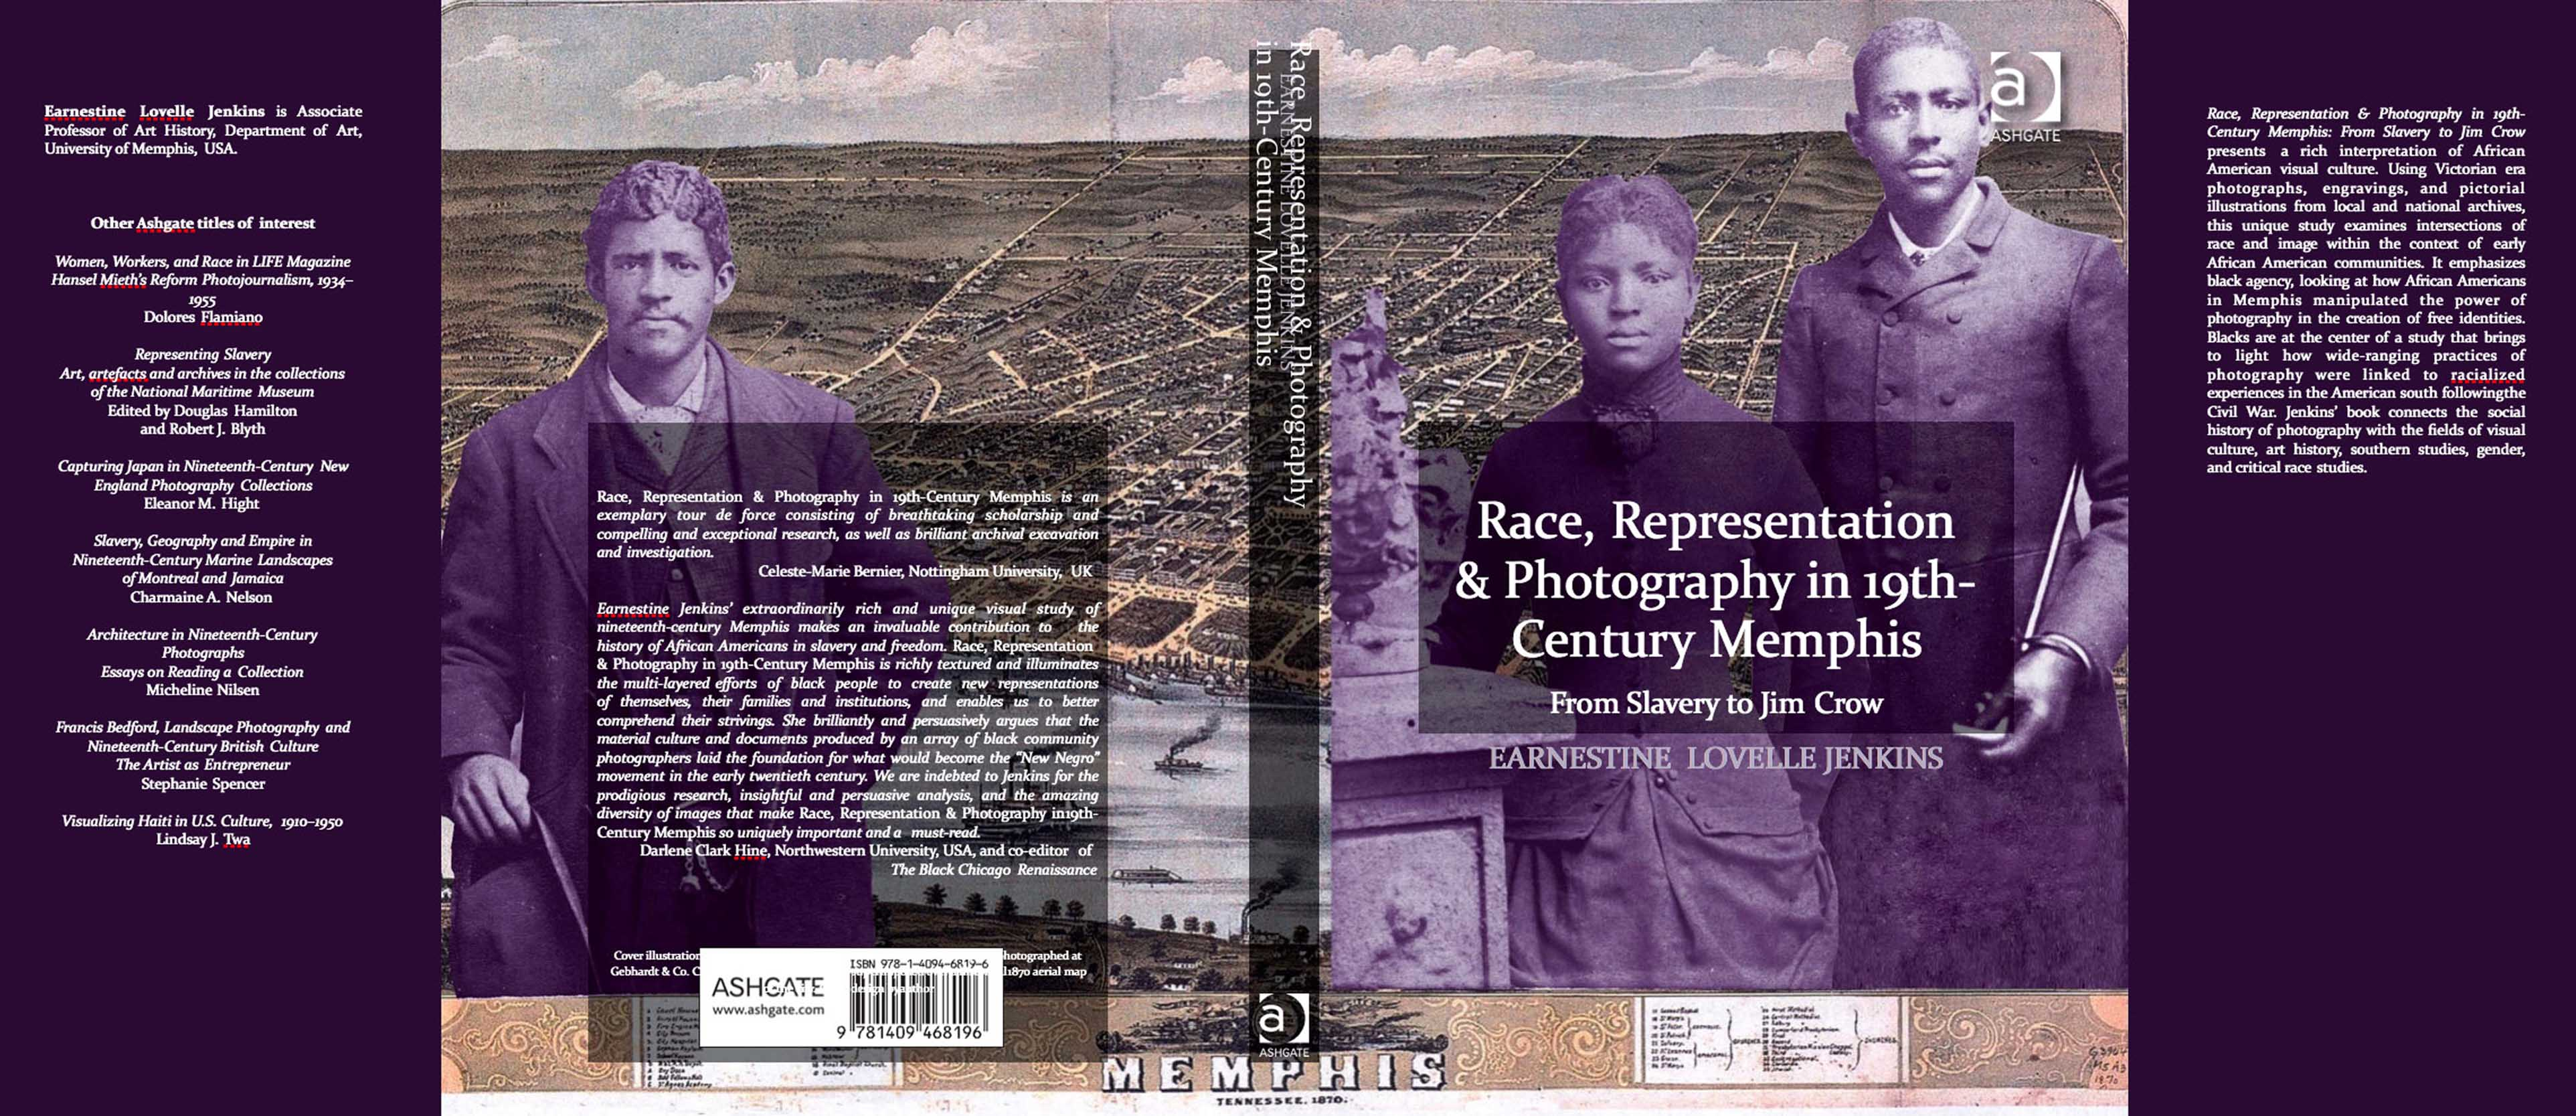 Race, Representation and Photography in 19th Century Memphis book cover